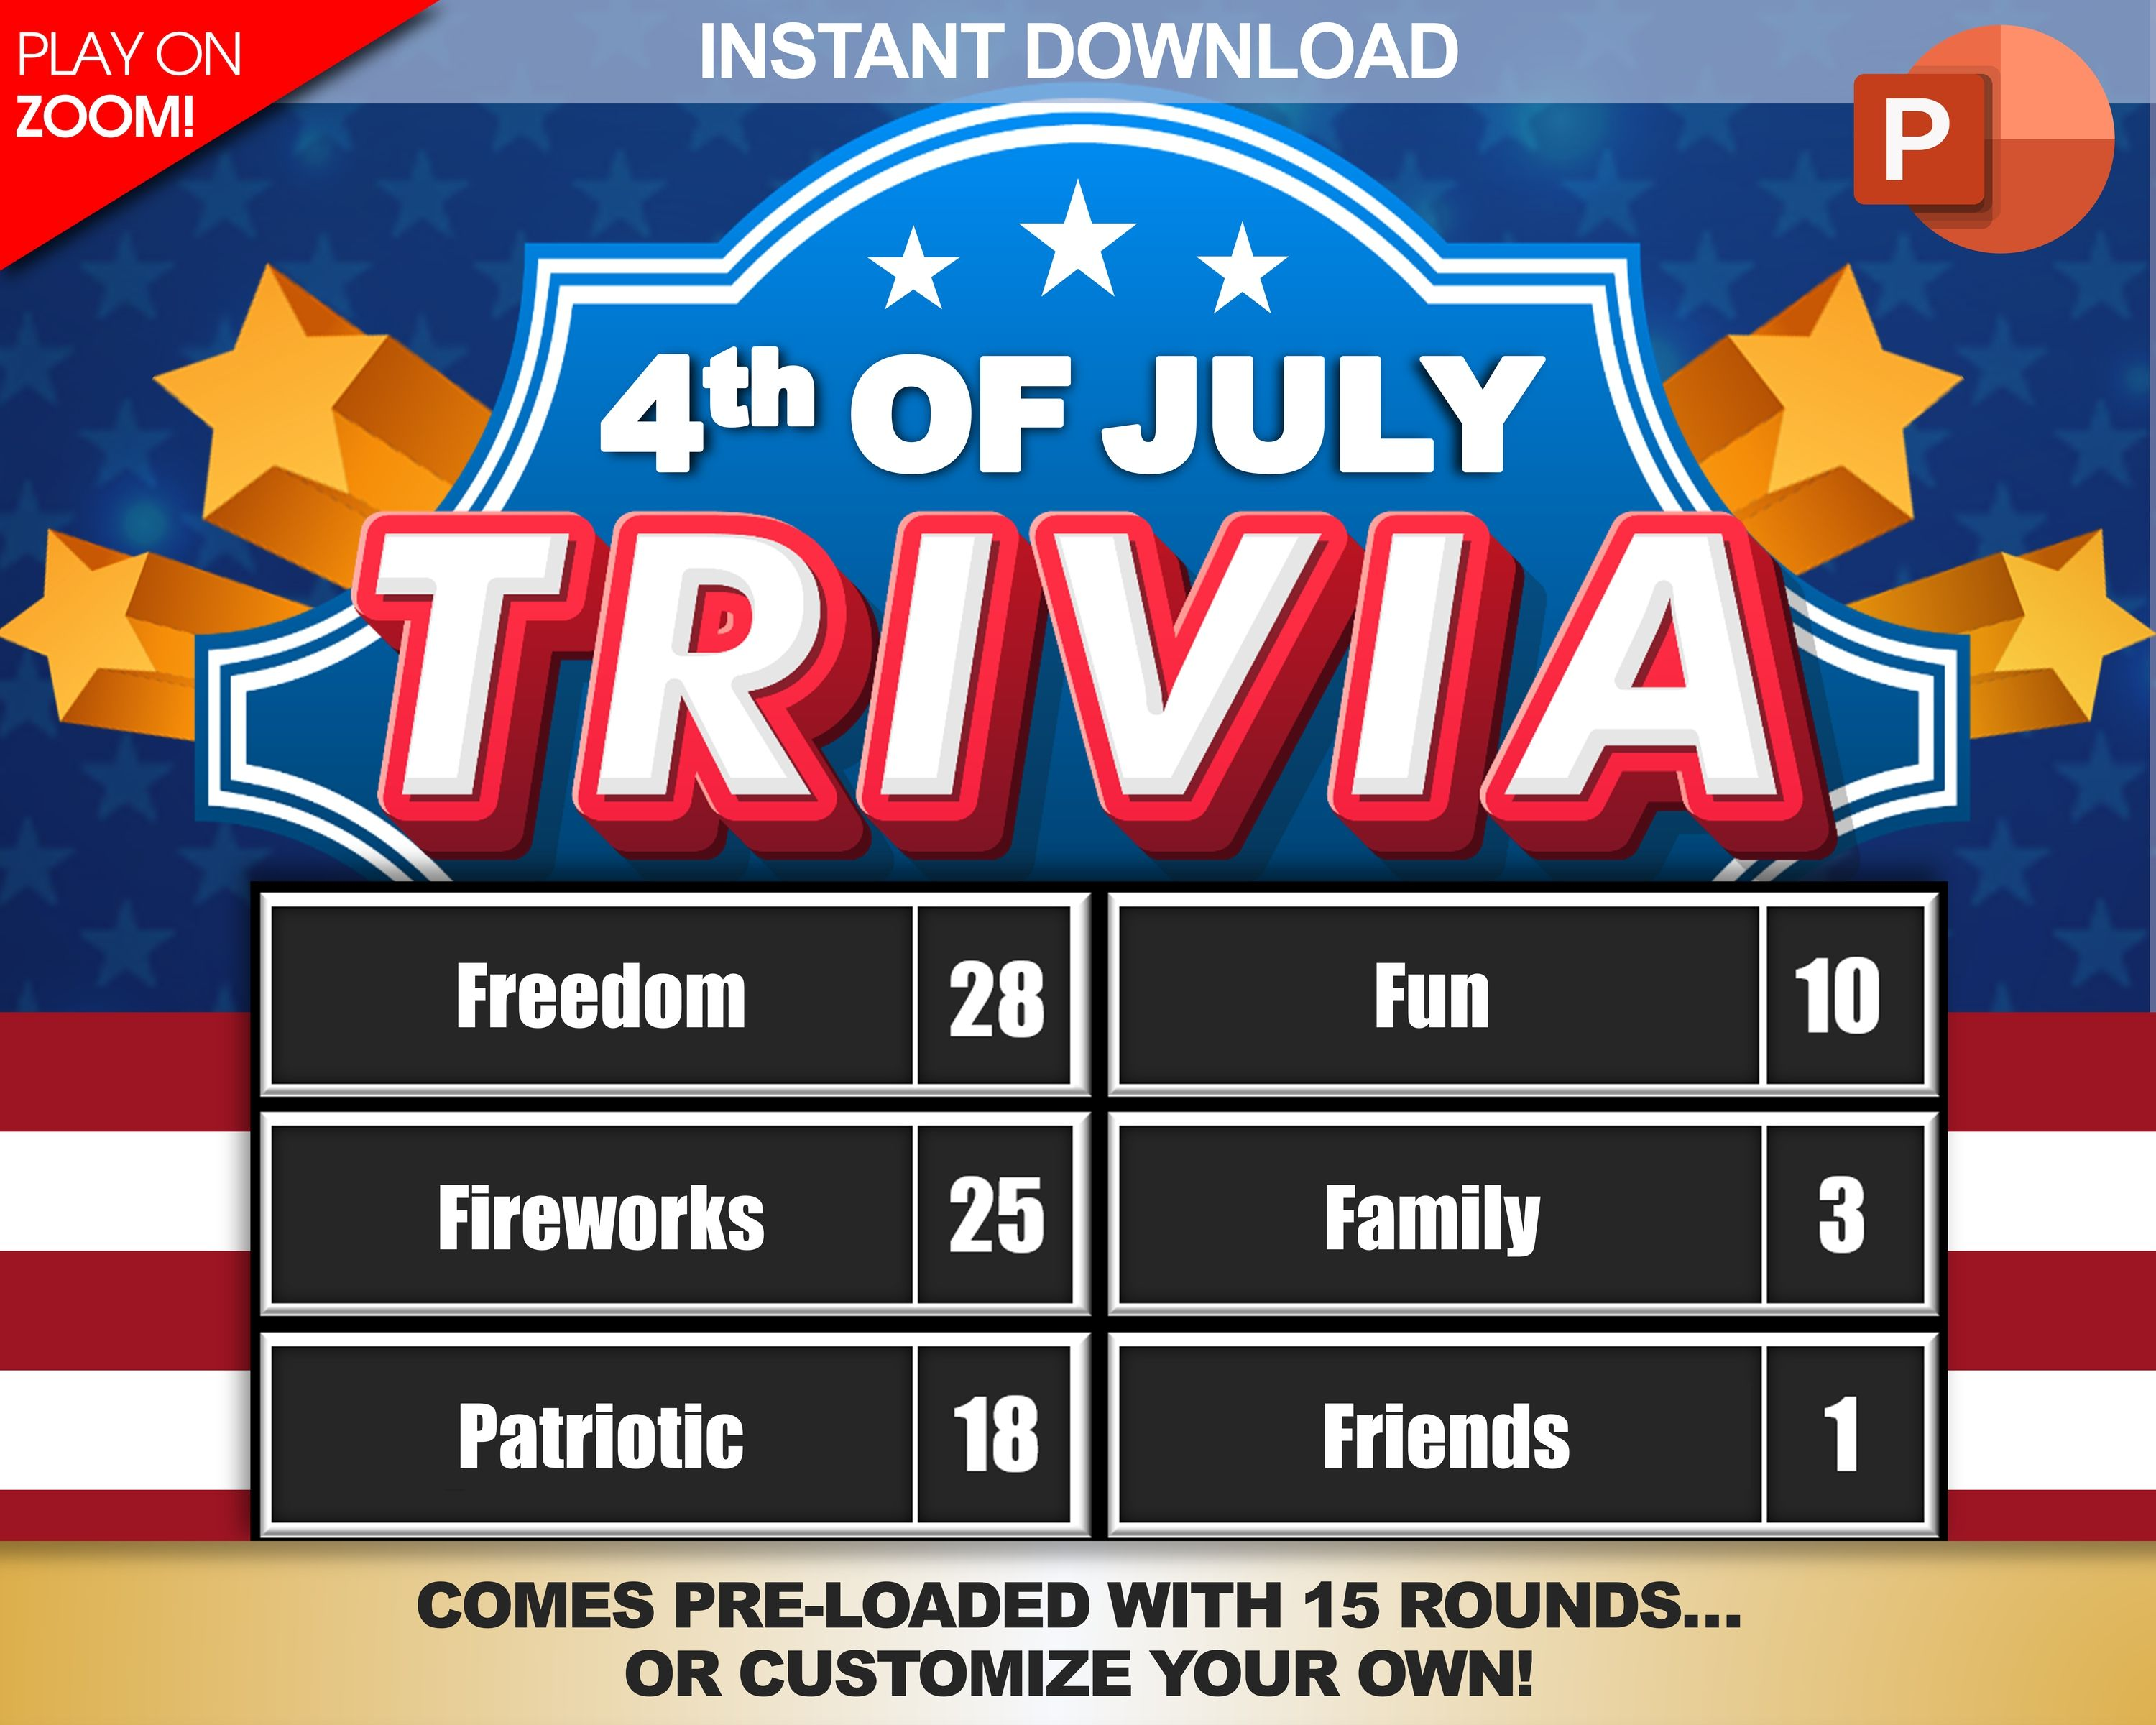 4th of July Trivia Party Game Download Play on Zoom PC